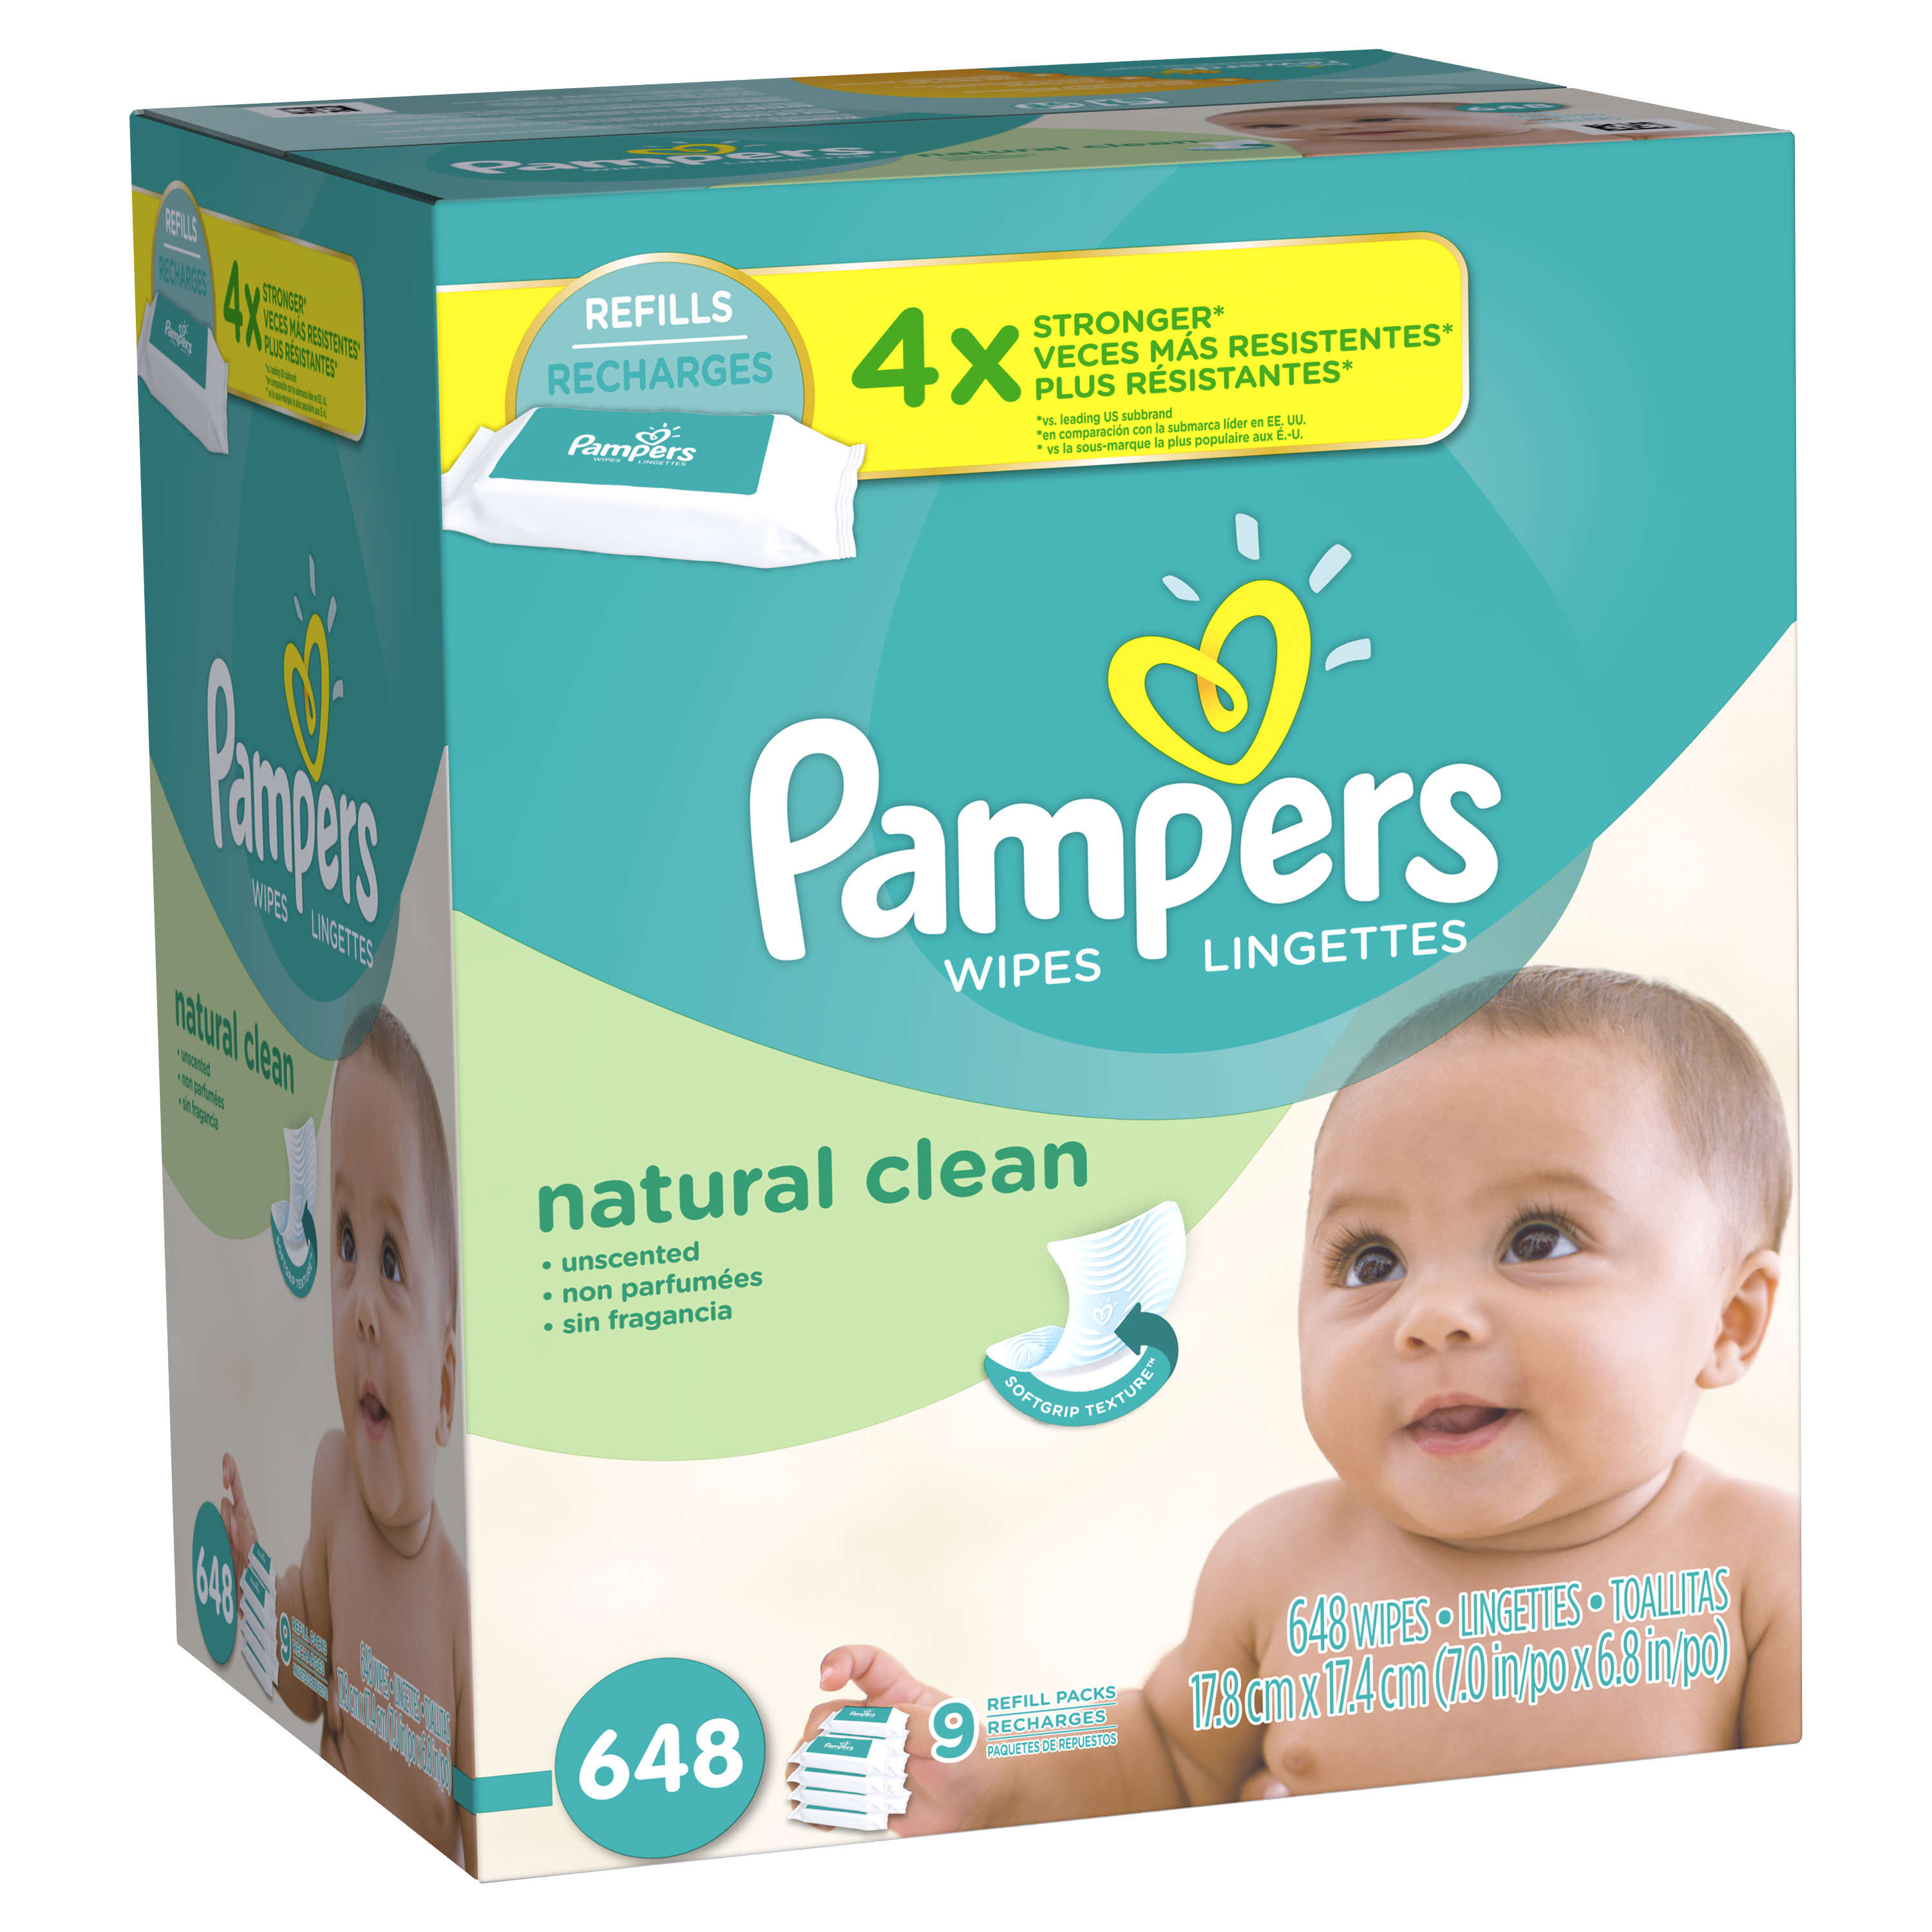 Pampers Natural Clean Baby Wipes, Unscented, 9 refill packs of 72 (648 count)